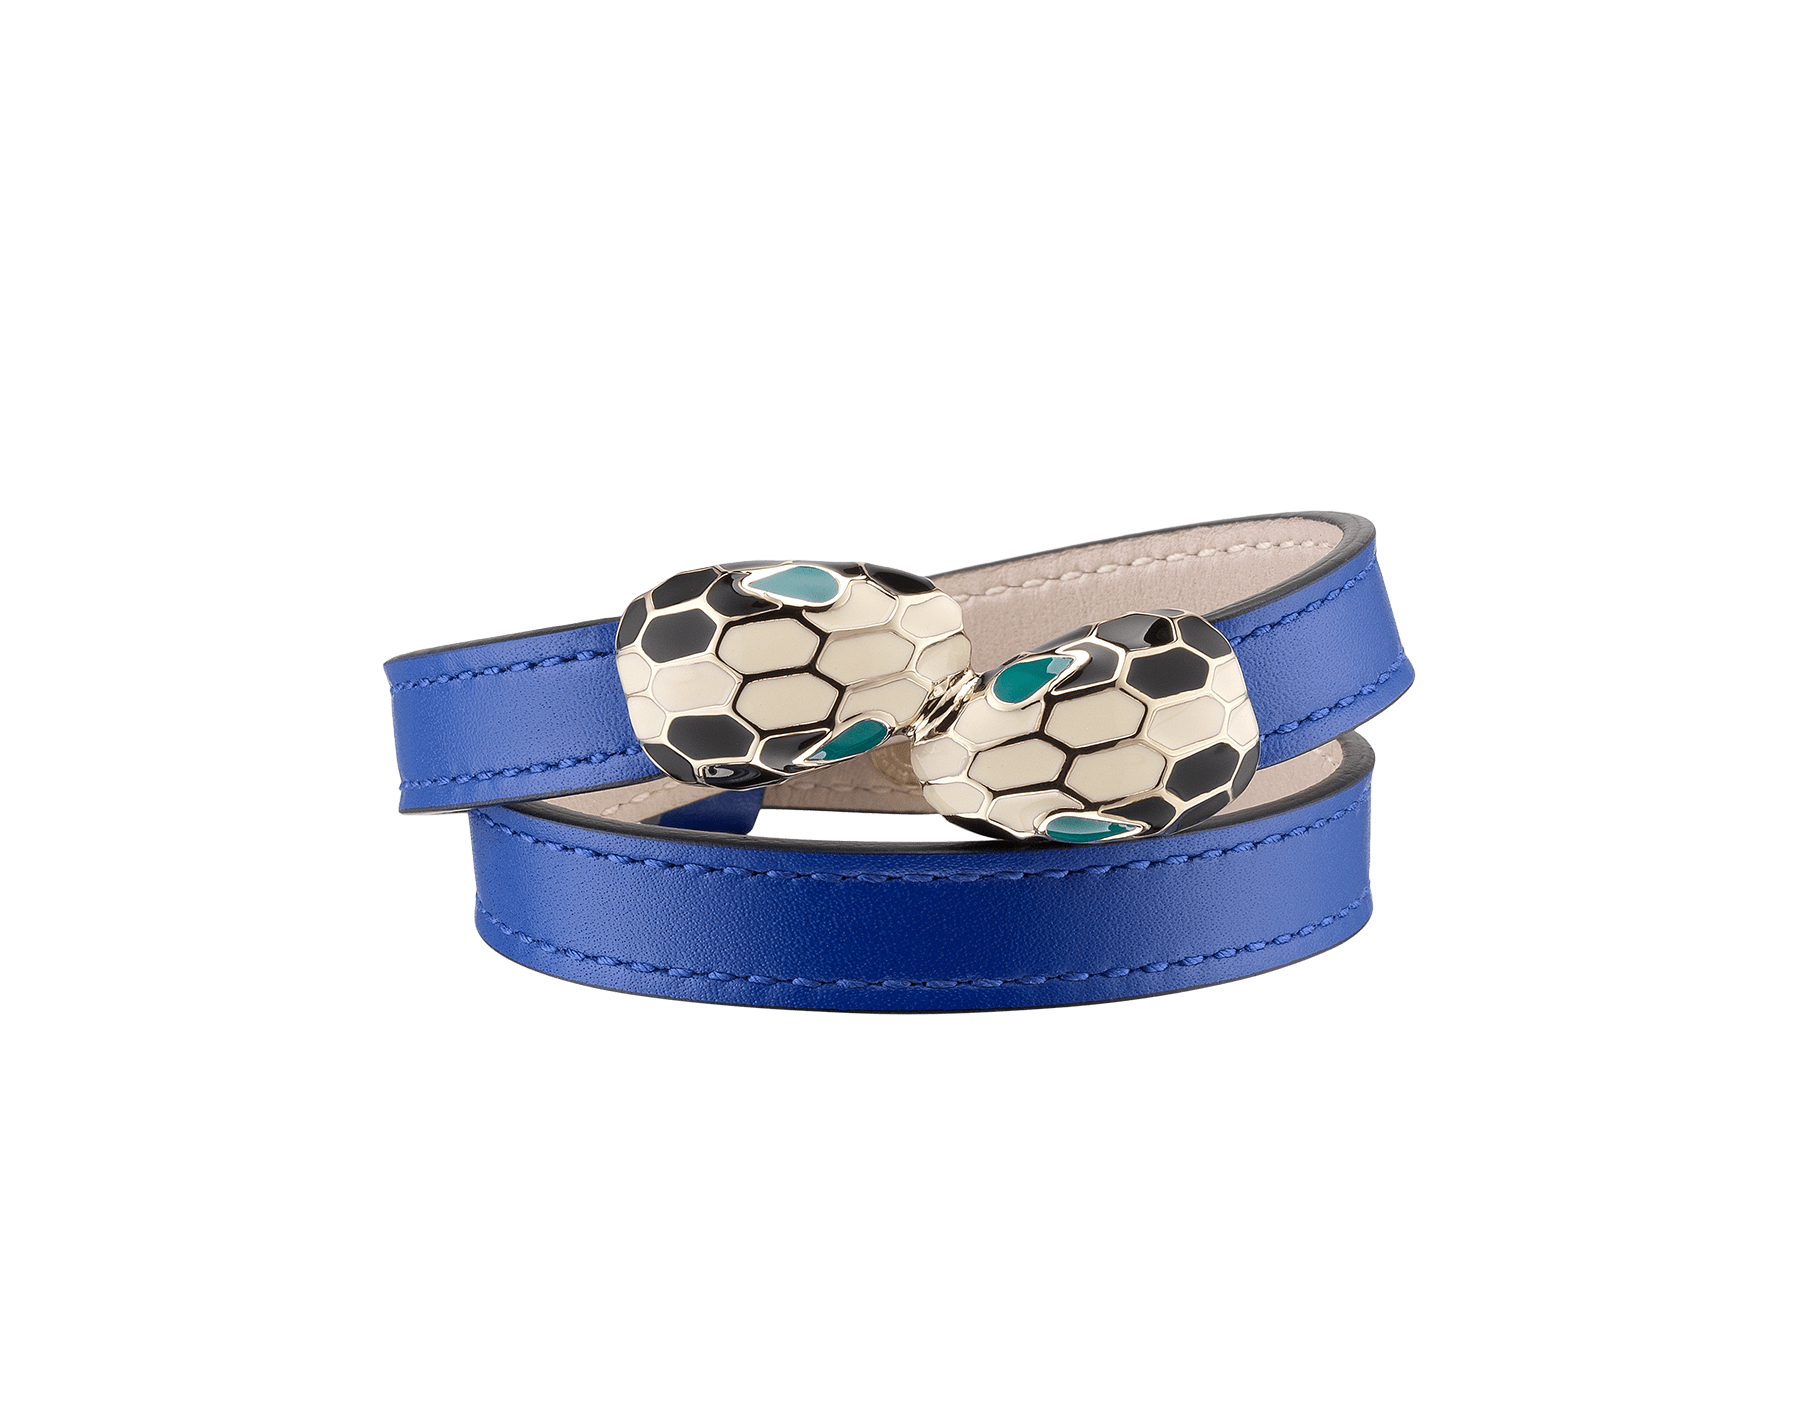 Serpenti Forever multi-coiled bracelet in cobalt tourmaline calf leather, with brass light gold plated hardware. Iconic contraire snakehead décor in black and white enamel, with green enamel eyes MCSerp-CL-CT image 1